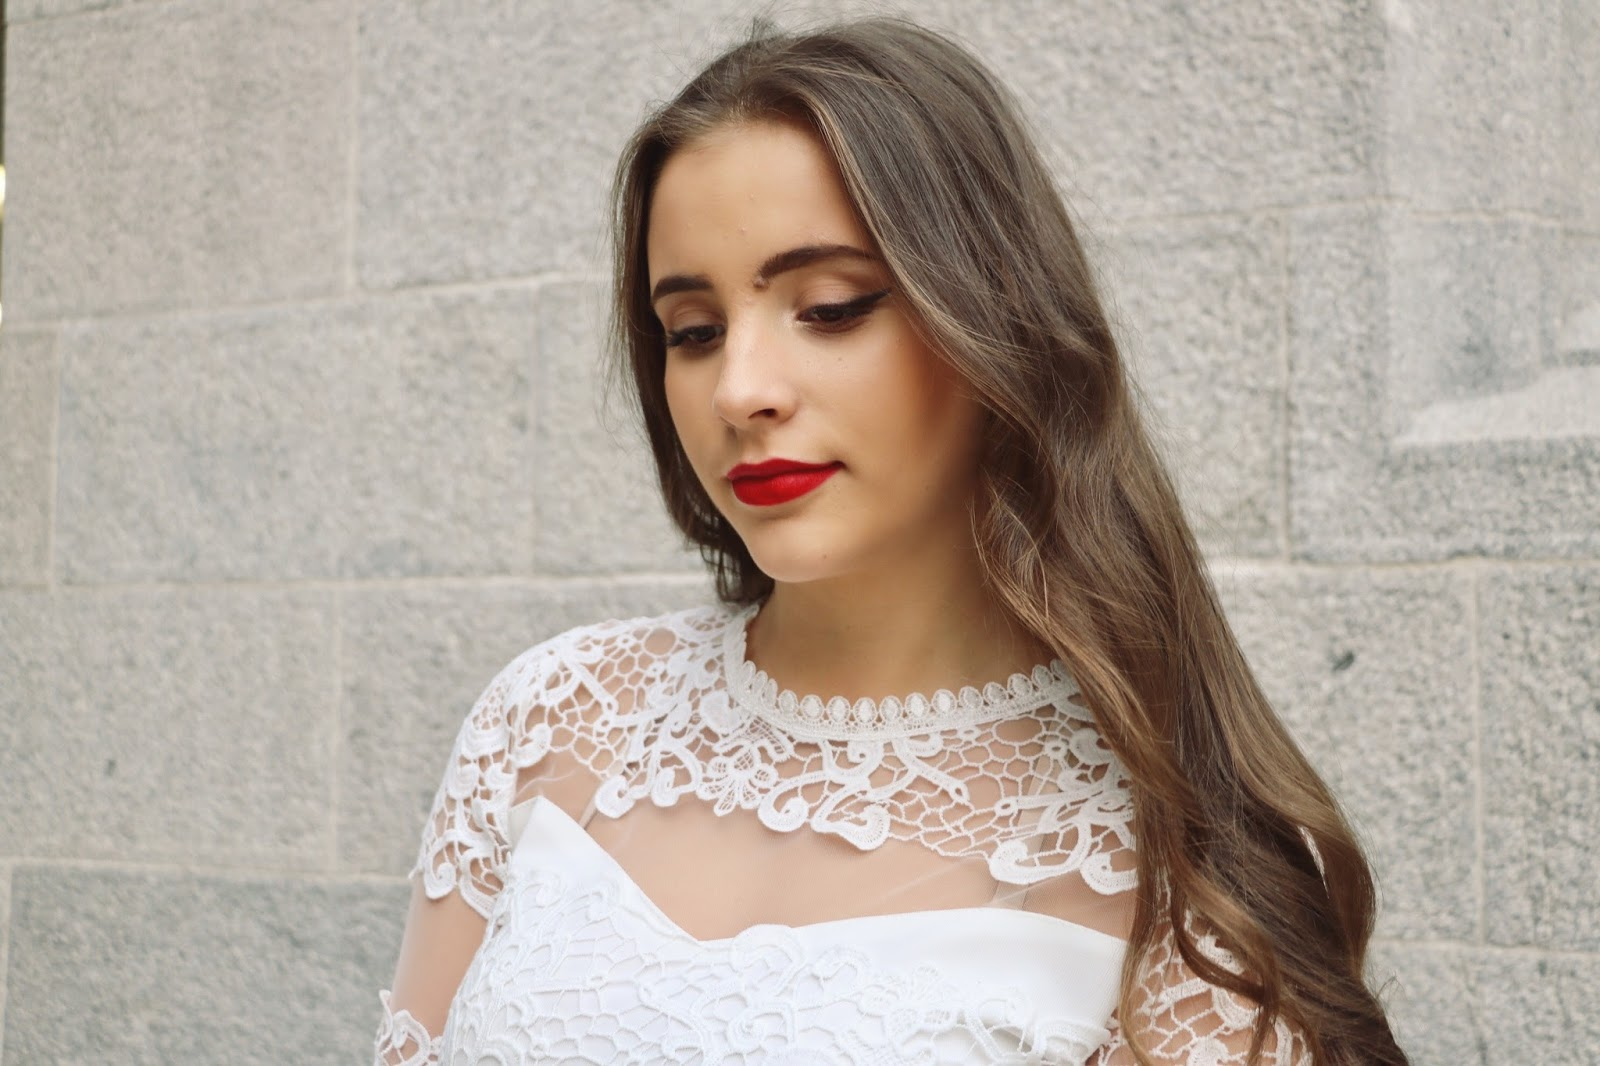 White Lace and Red Lips Holiday Fashion